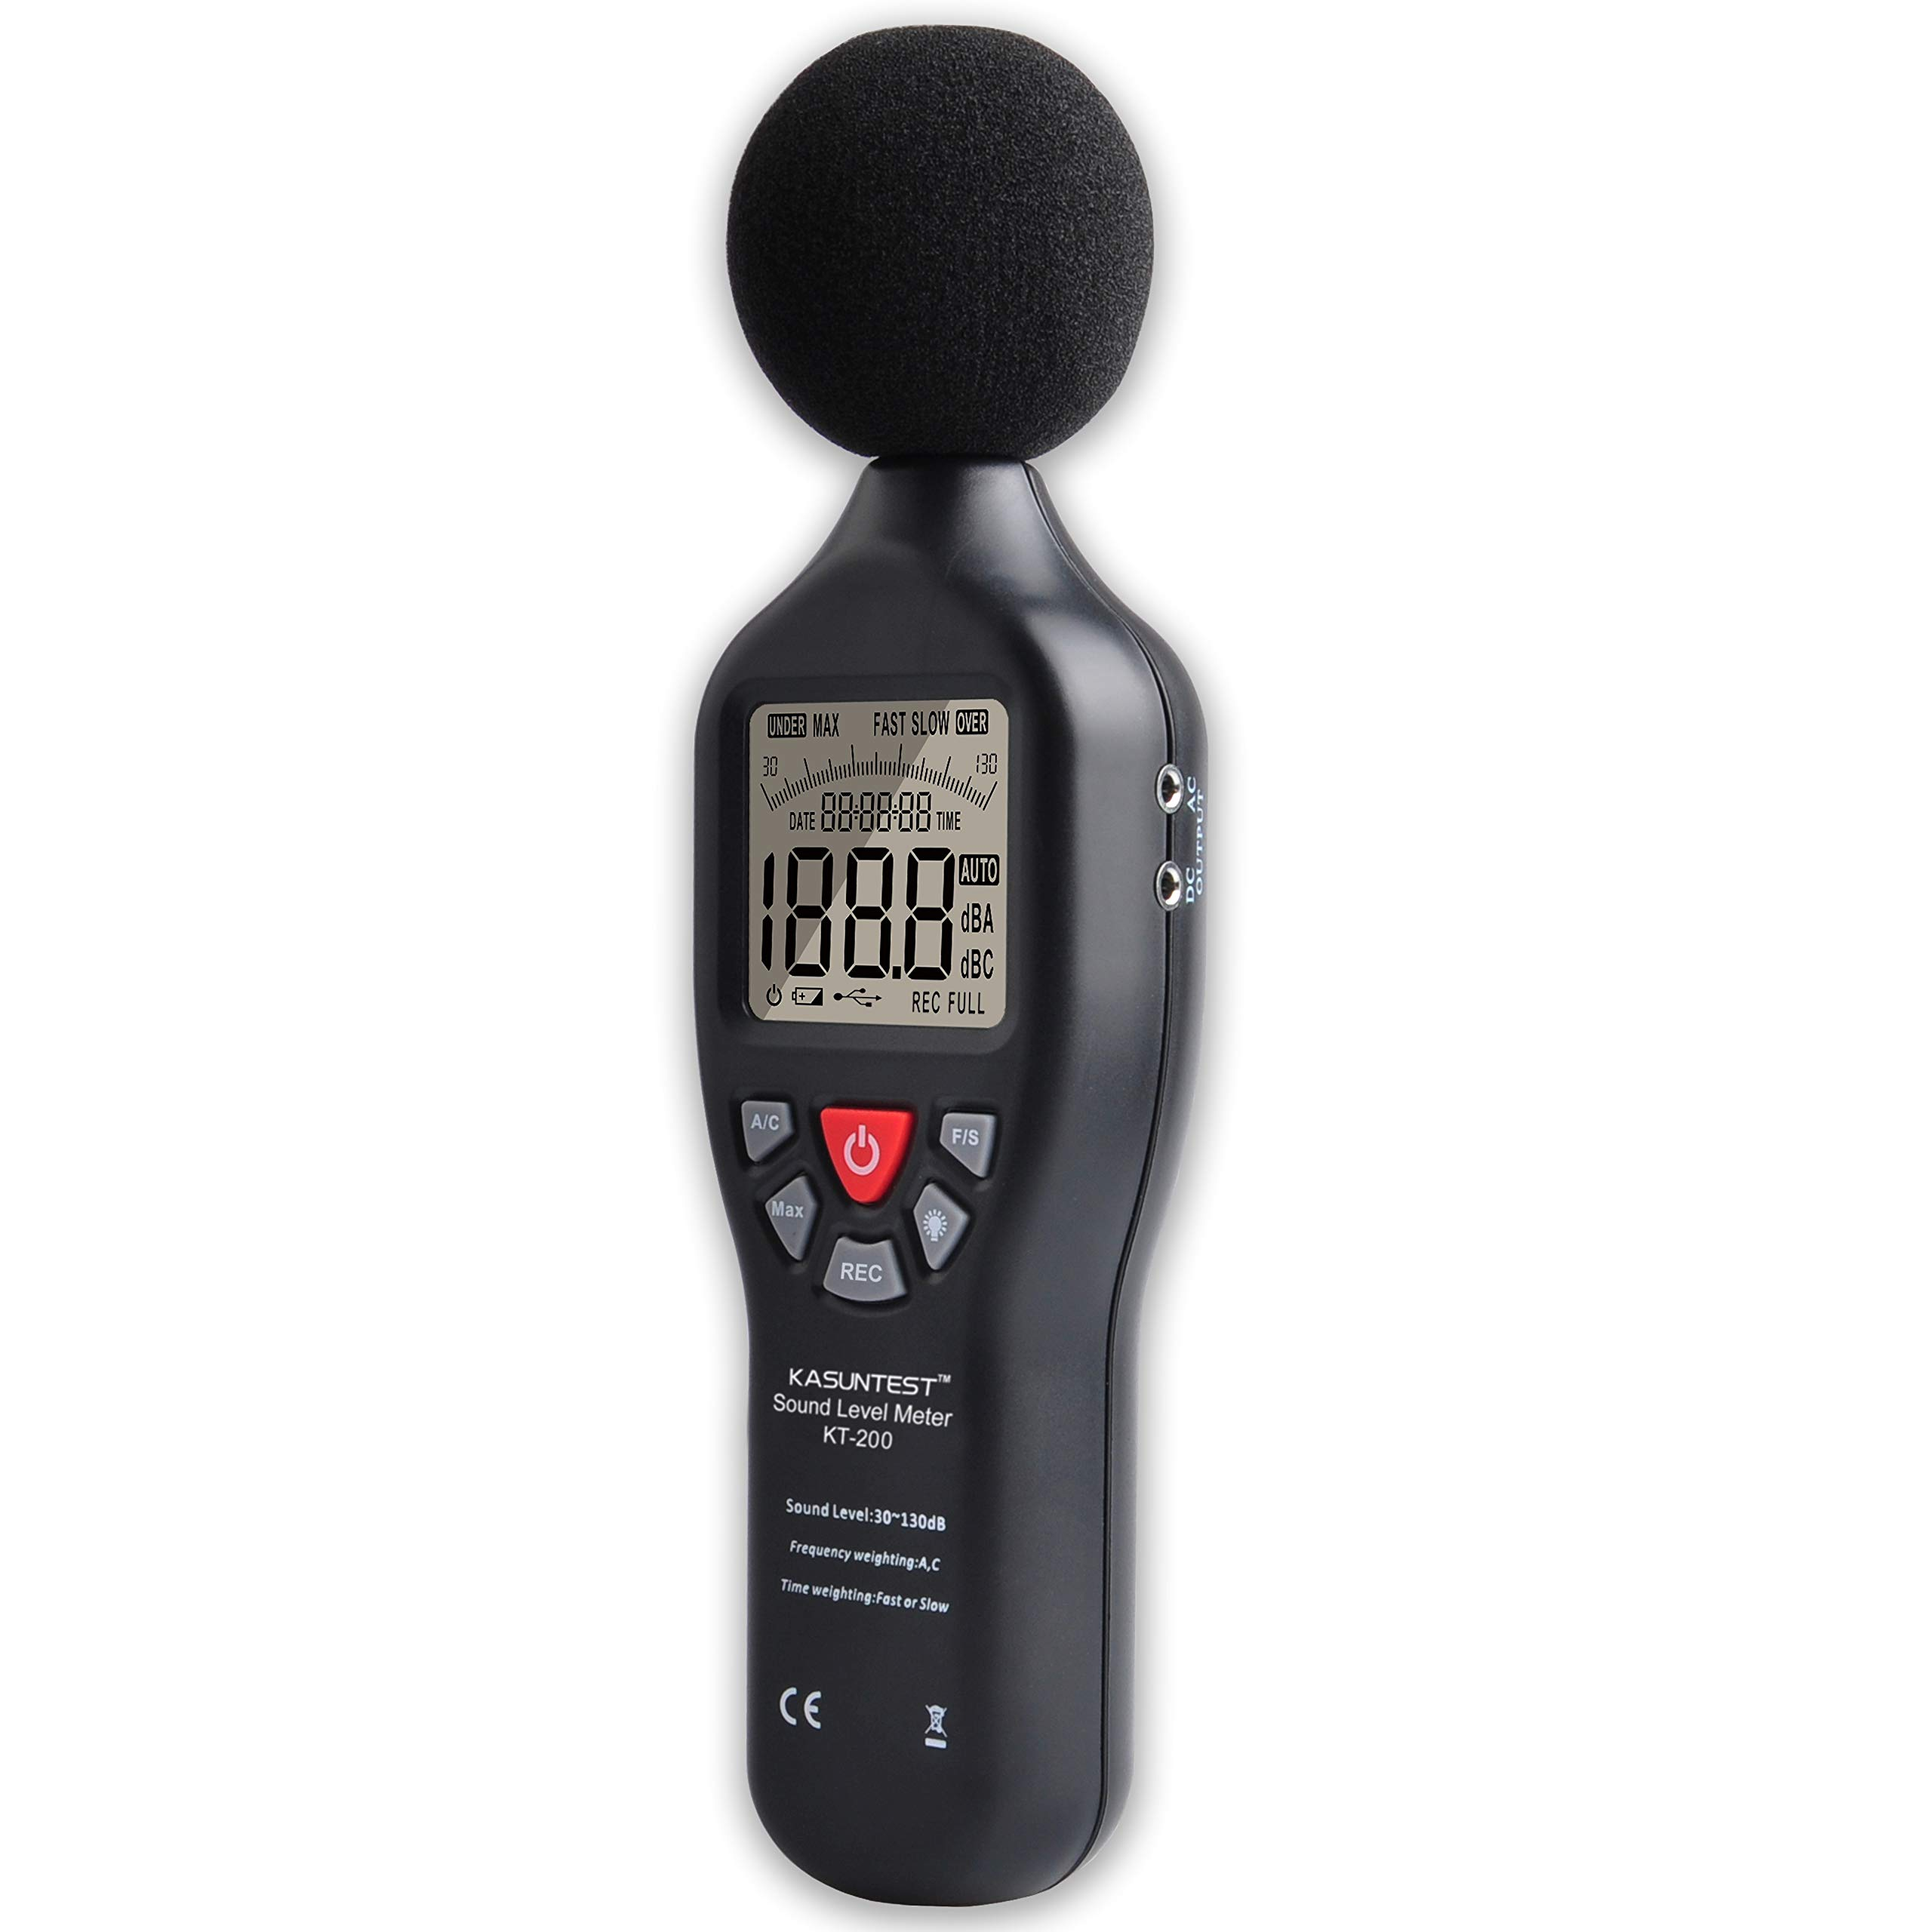 KASUNTEST Professional Sound Level Meter Digital Noise Tester with Data Logger Function Range:30 to 130dB with Large LCD Display and Backlit by K KASUNTEST